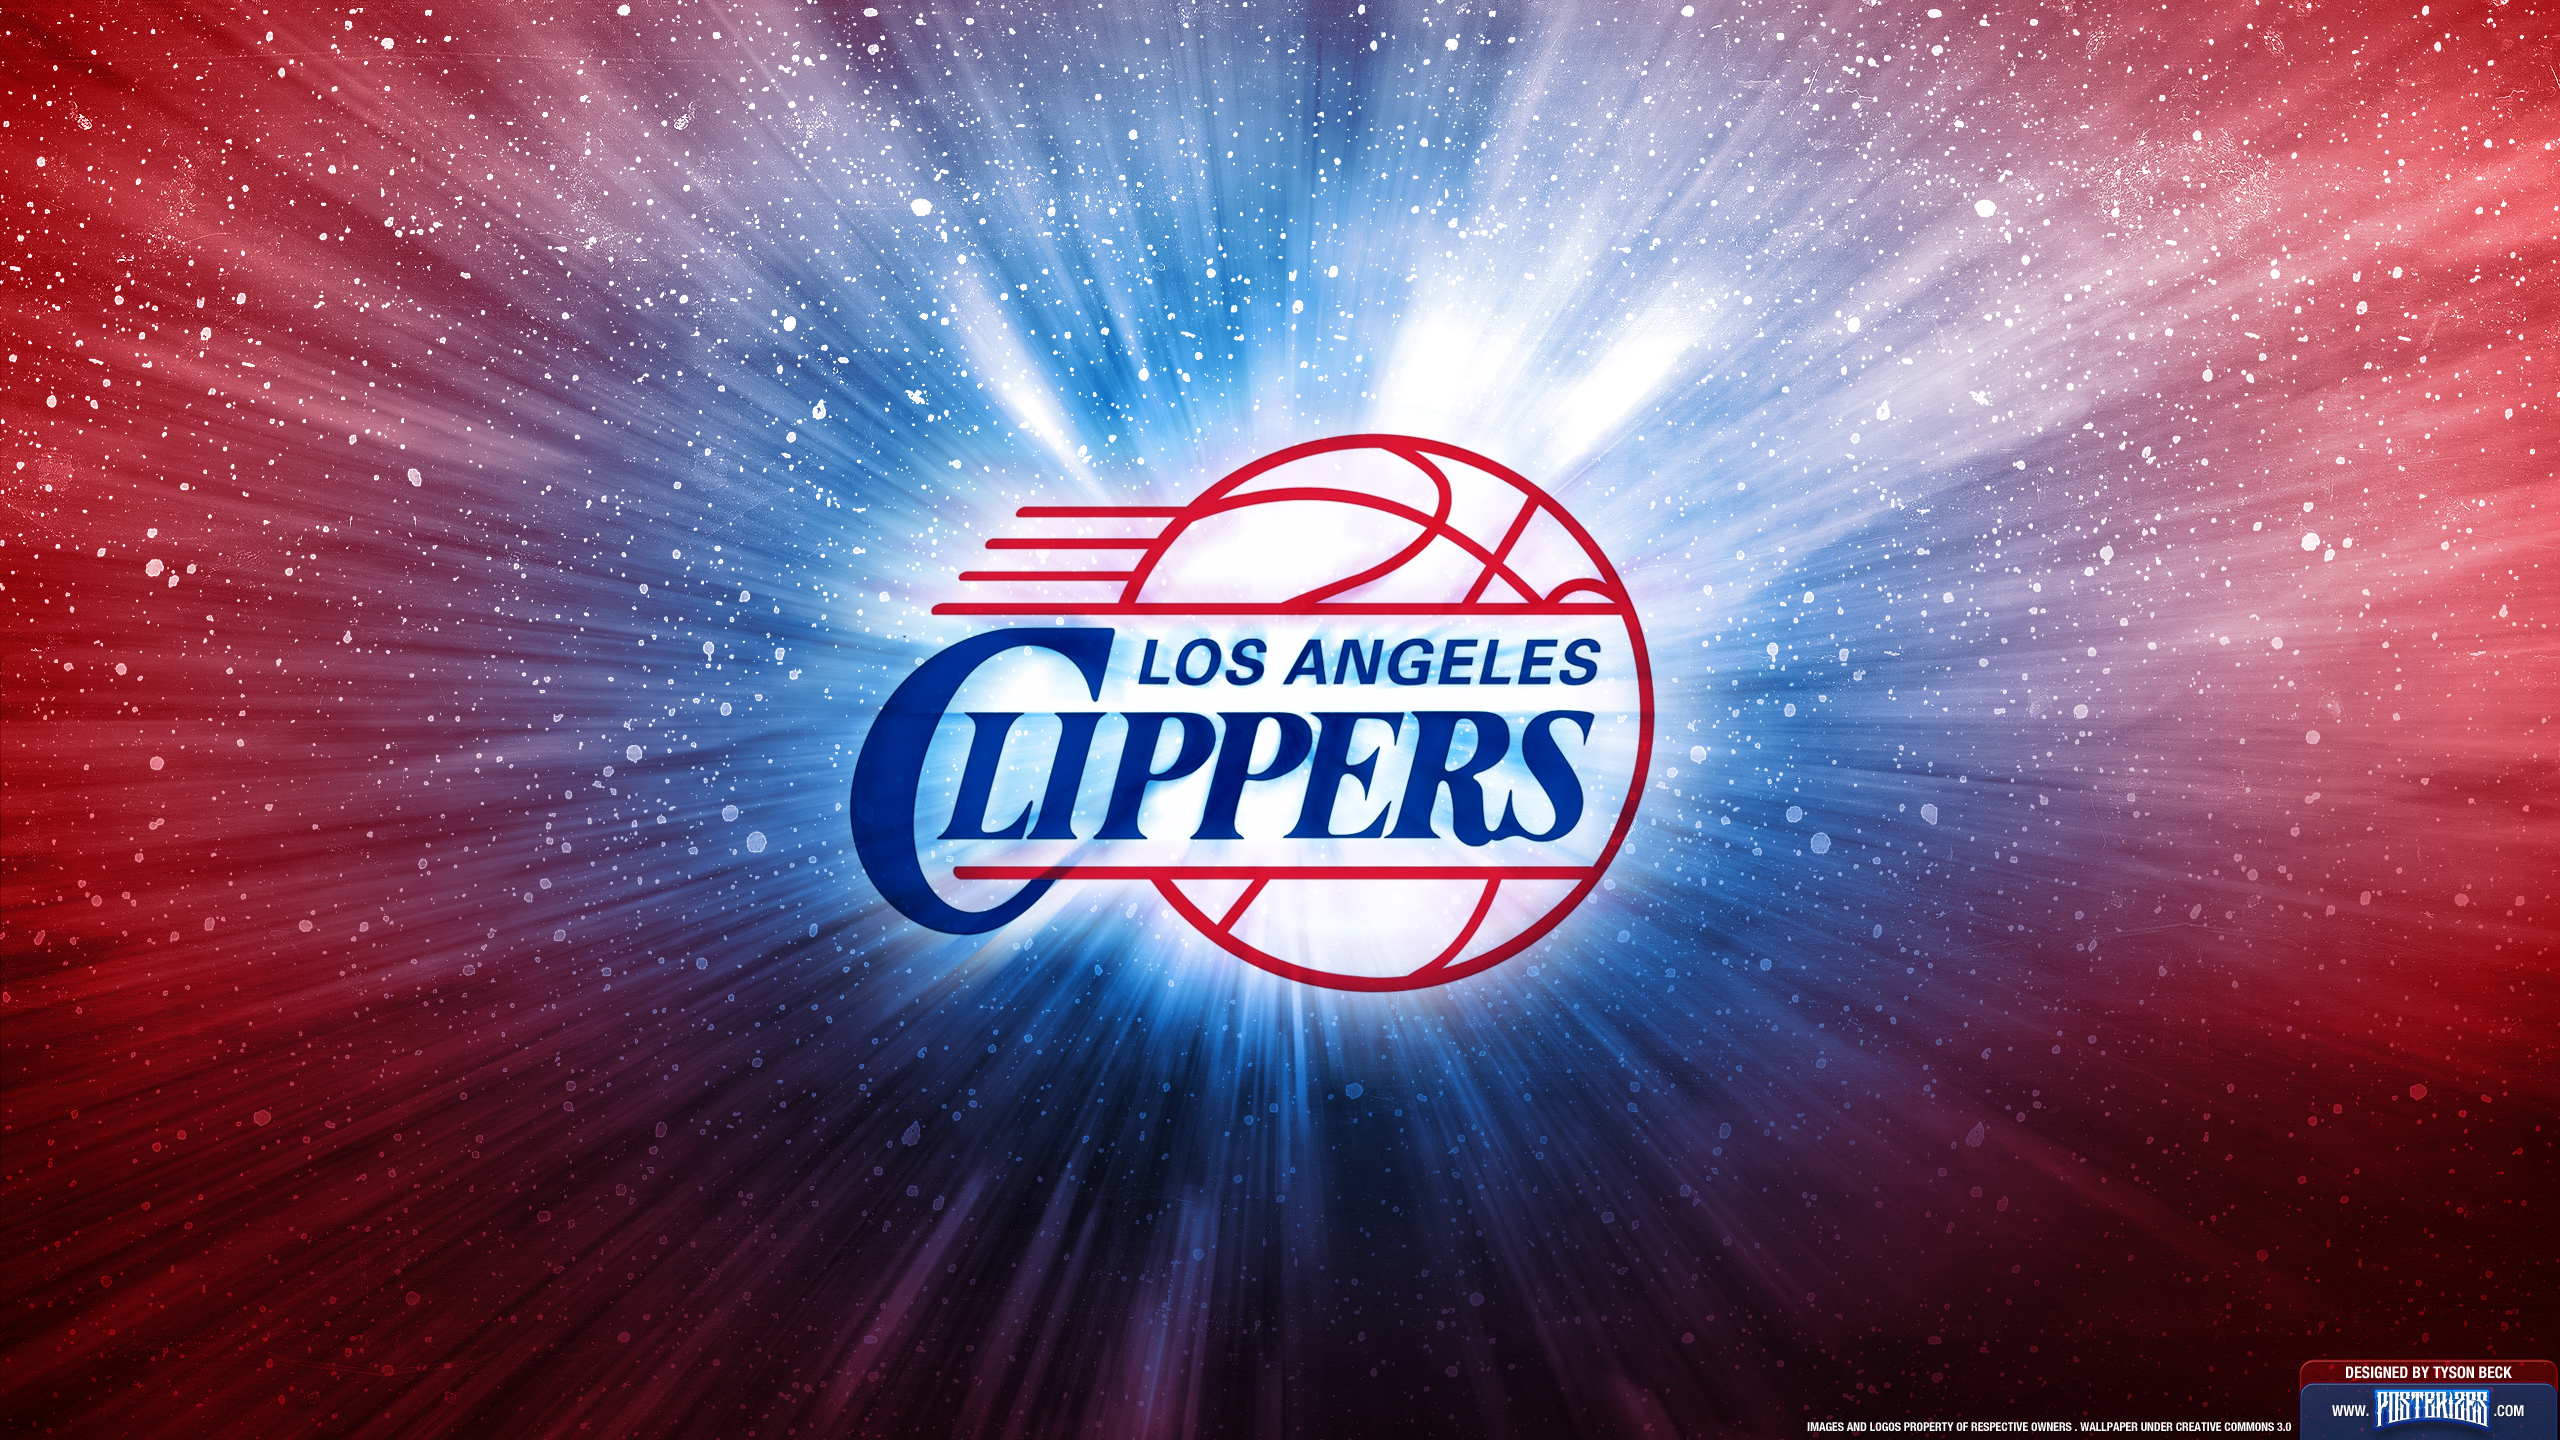 Clippers Wallpaper - Background Houston Rockets Logo , HD Wallpaper & Backgrounds